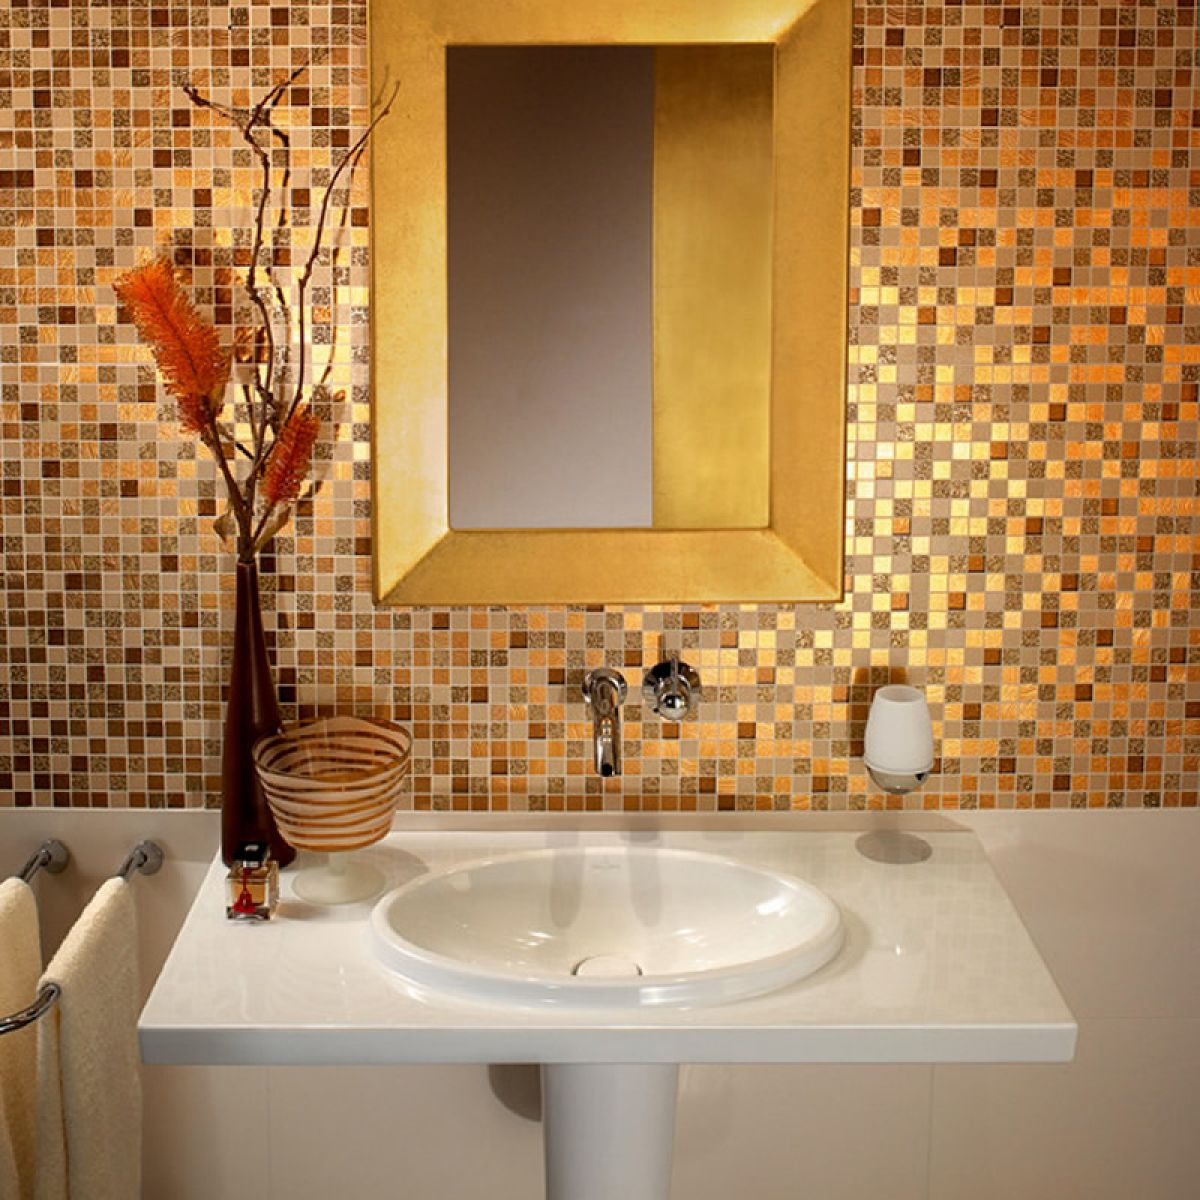 V b moonlight mosaic tiles 1042 30 x 30cm uk bathrooms for Gold mosaic bathroom accessories